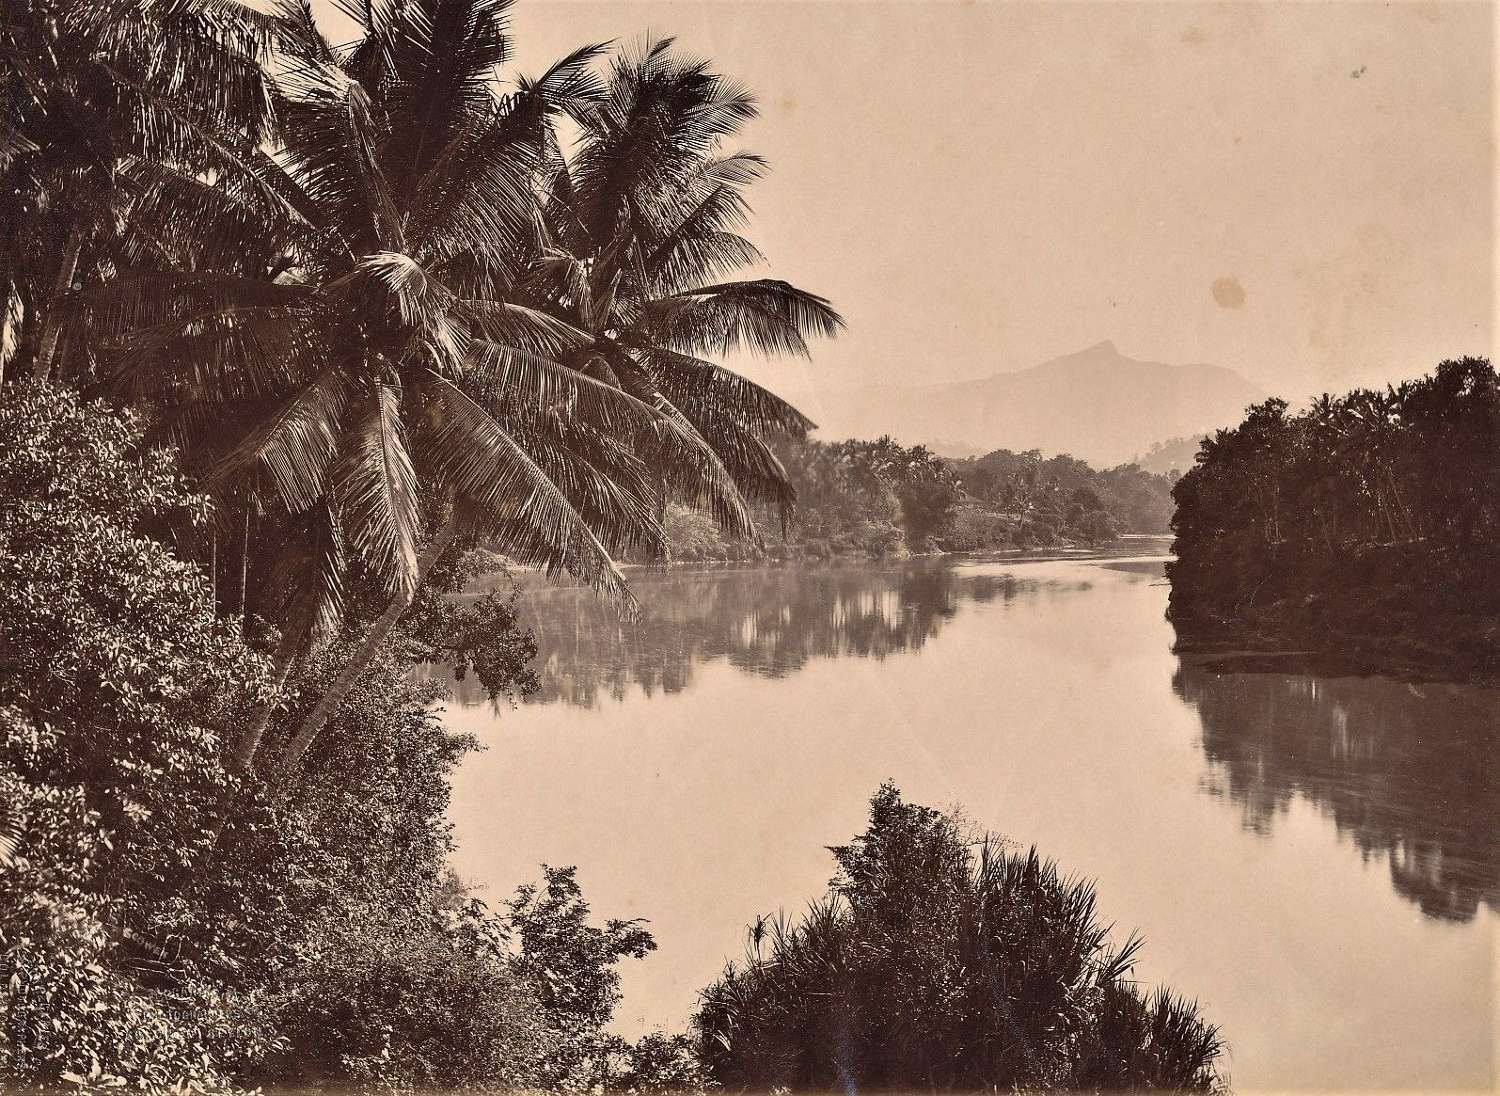 View in Ceylon By Apothecaries& Co Ltd C1880